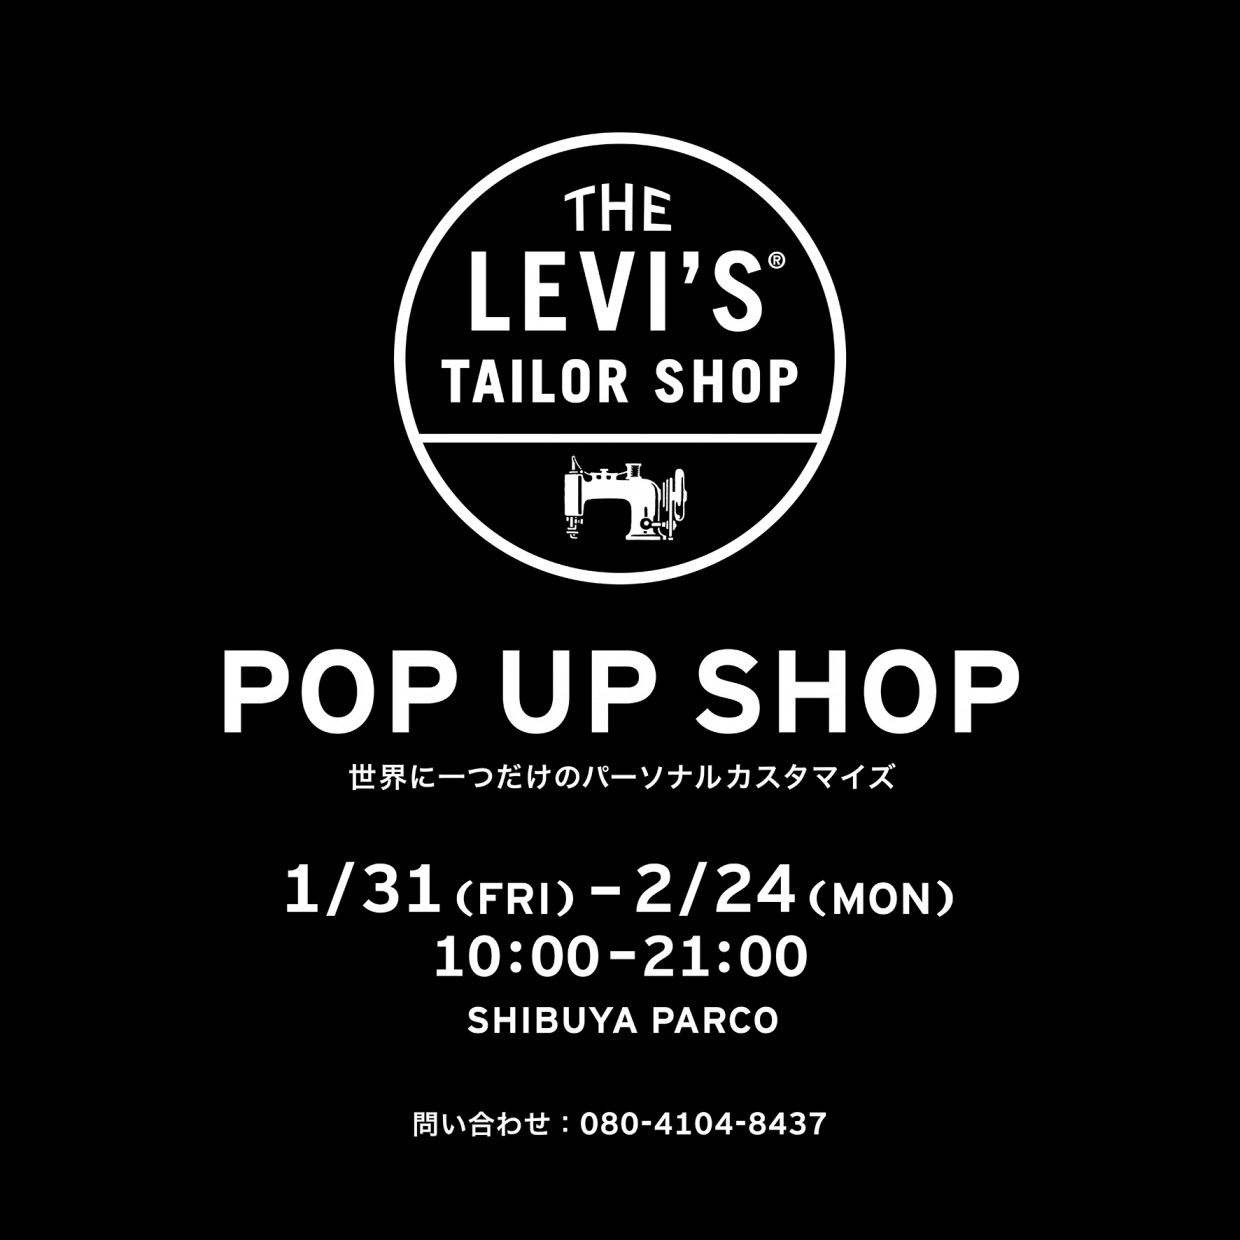 在THE LEVI'S®TAILOR SHOP-世界唯一的一個個人定製